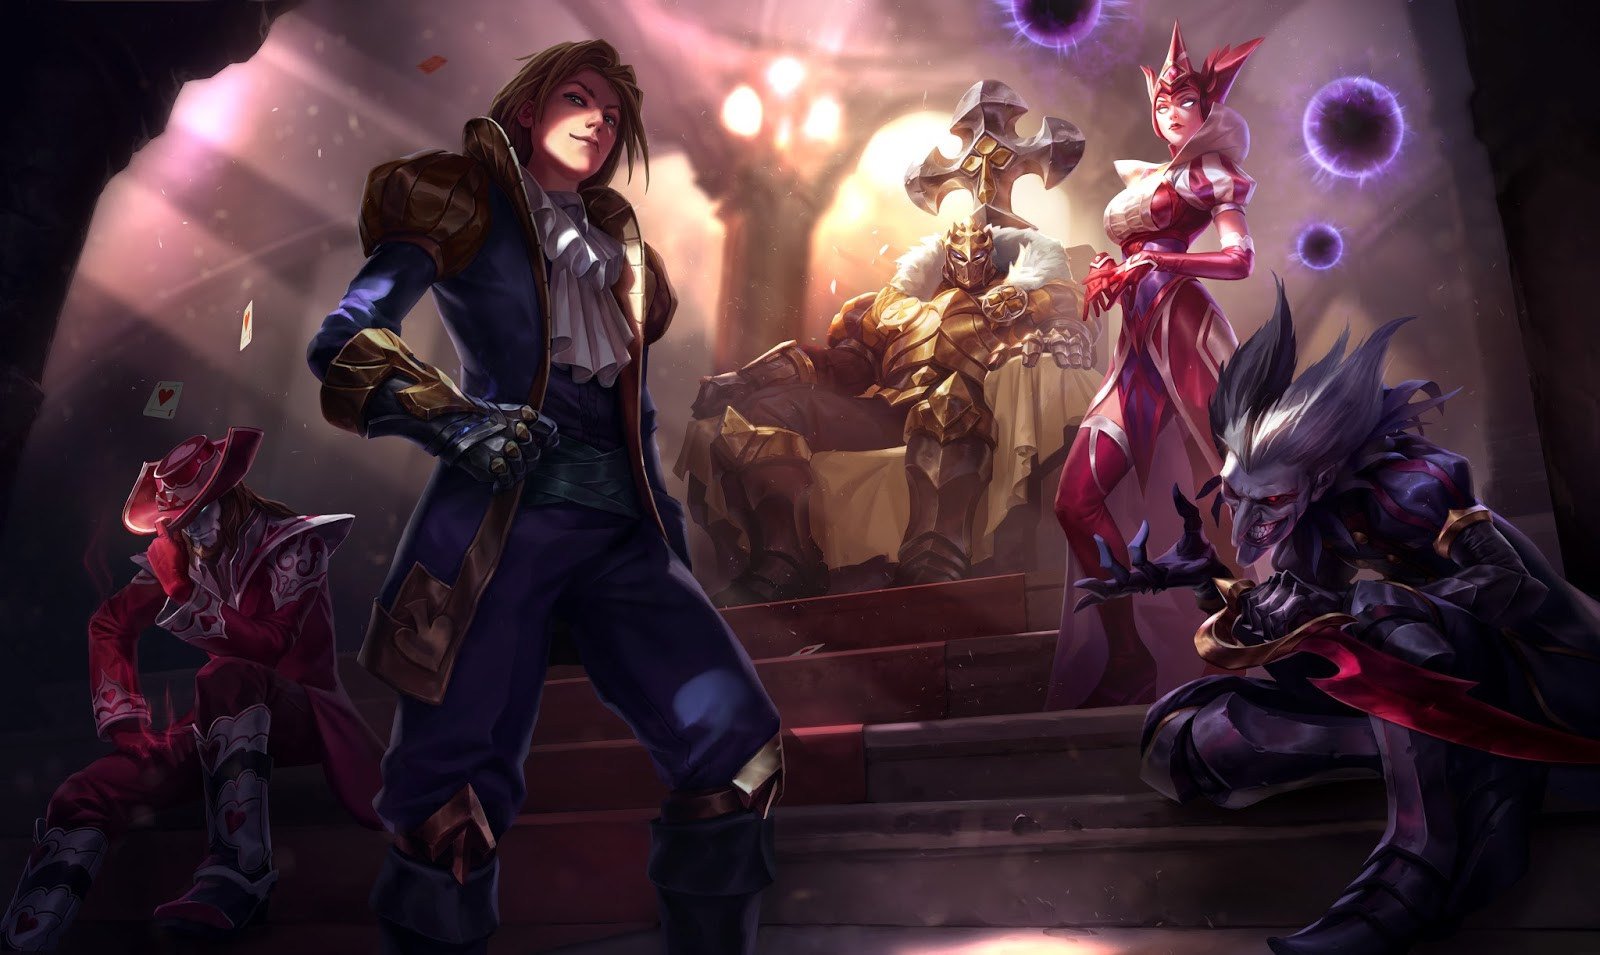 Ace Of Spades Ezreal And Jack Of Hearts Twisted Fate Use A